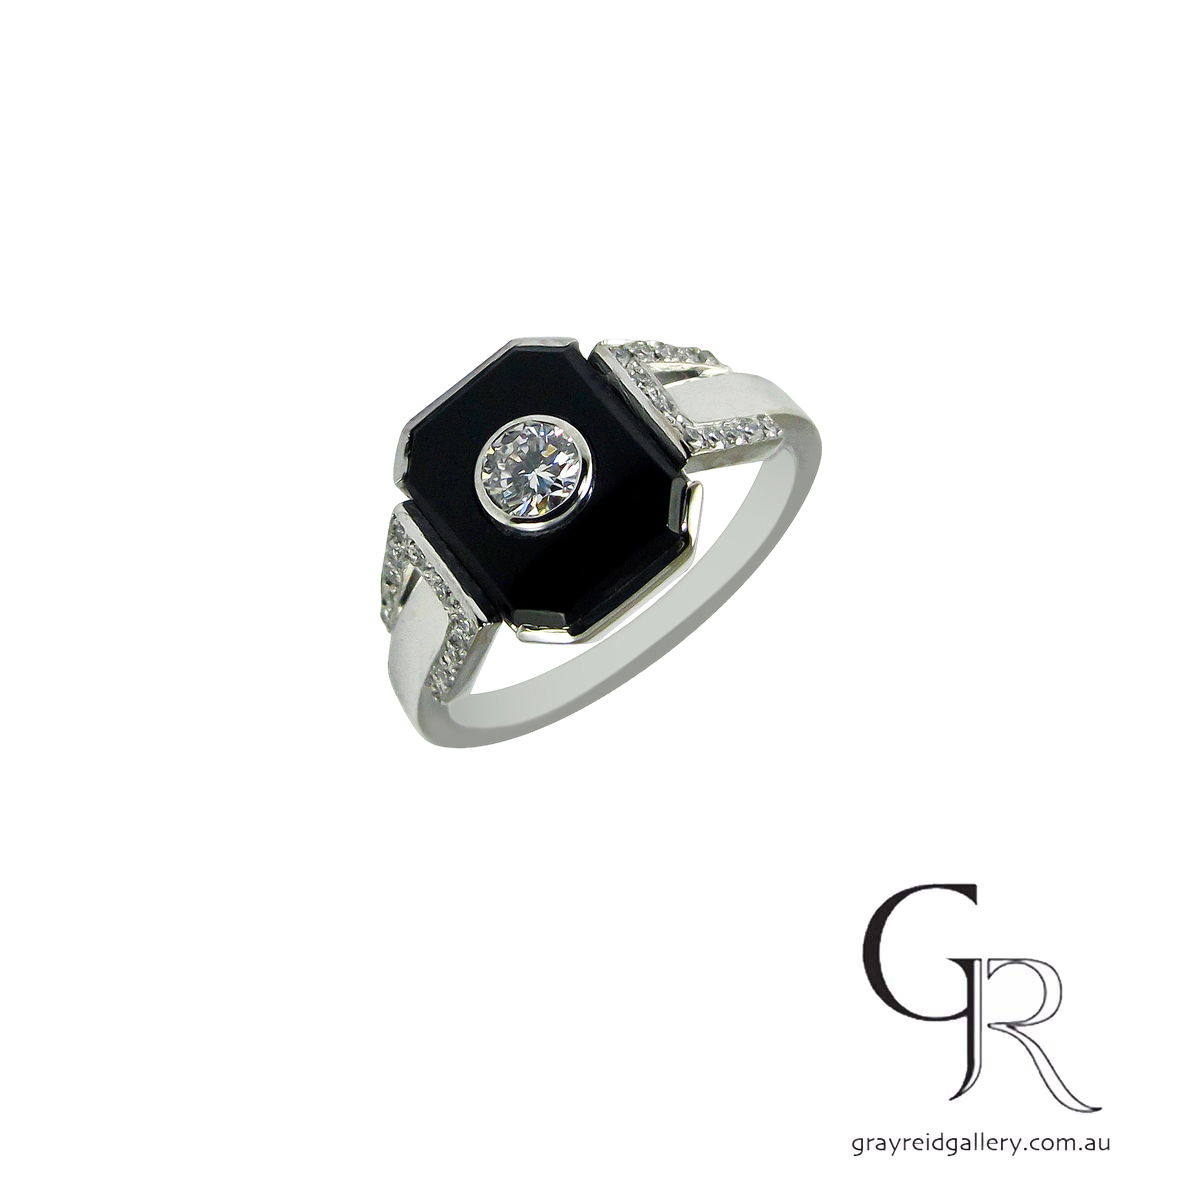 deco style engagement ring melbourne onyx and diamond gray reid gallery.jpg